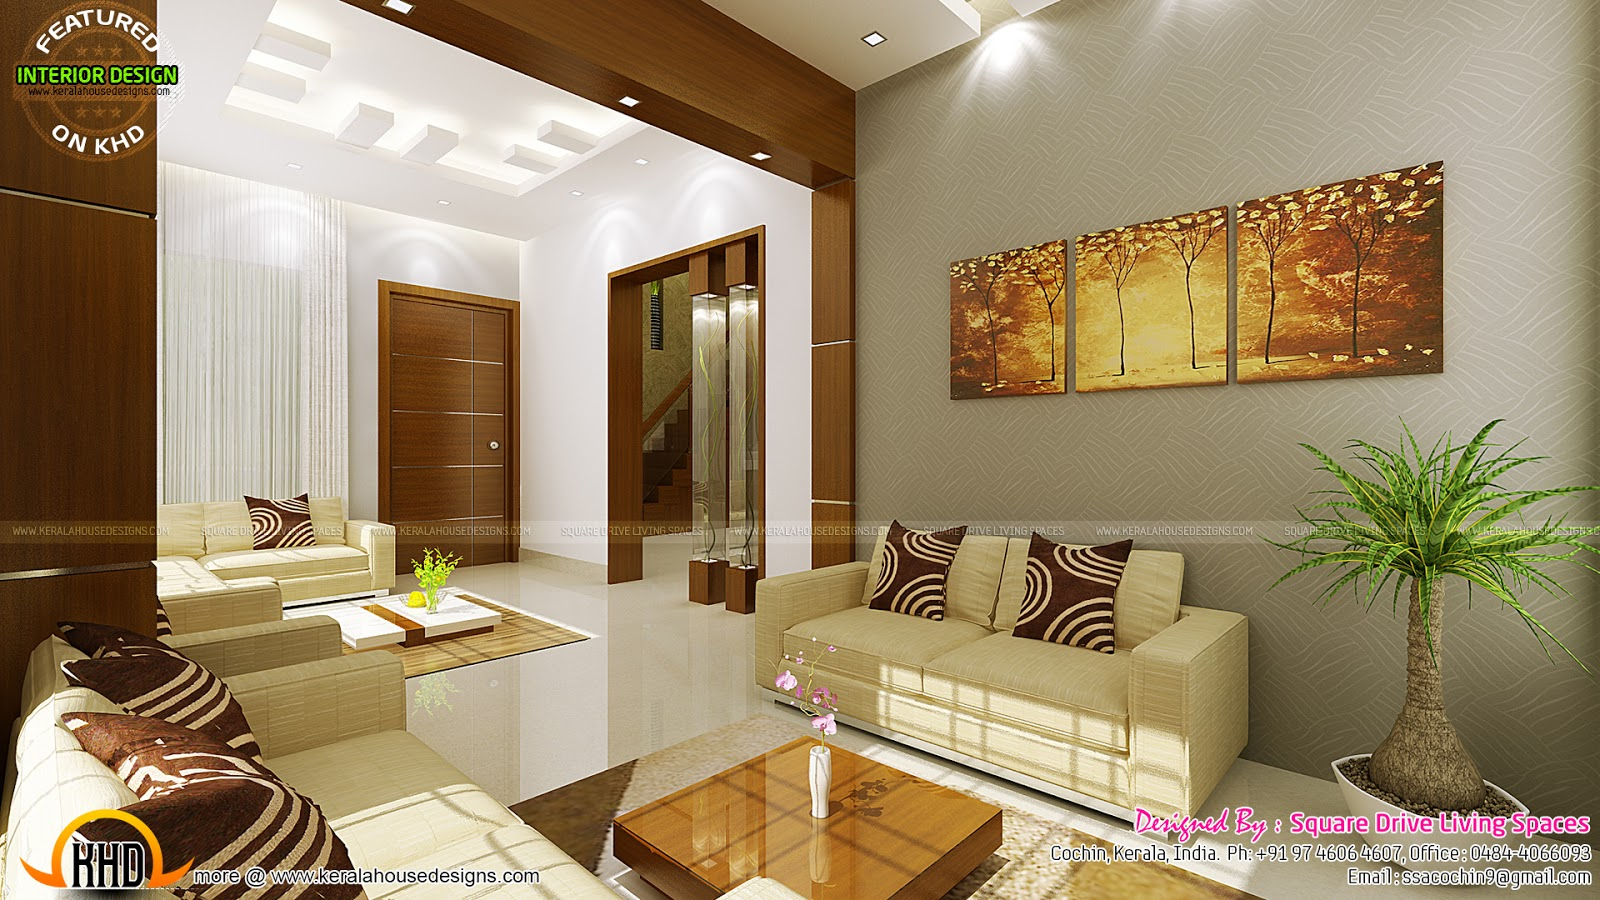 Contemporary kitchen dining and living room kerala home for Interior design ideas for small homes in kerala